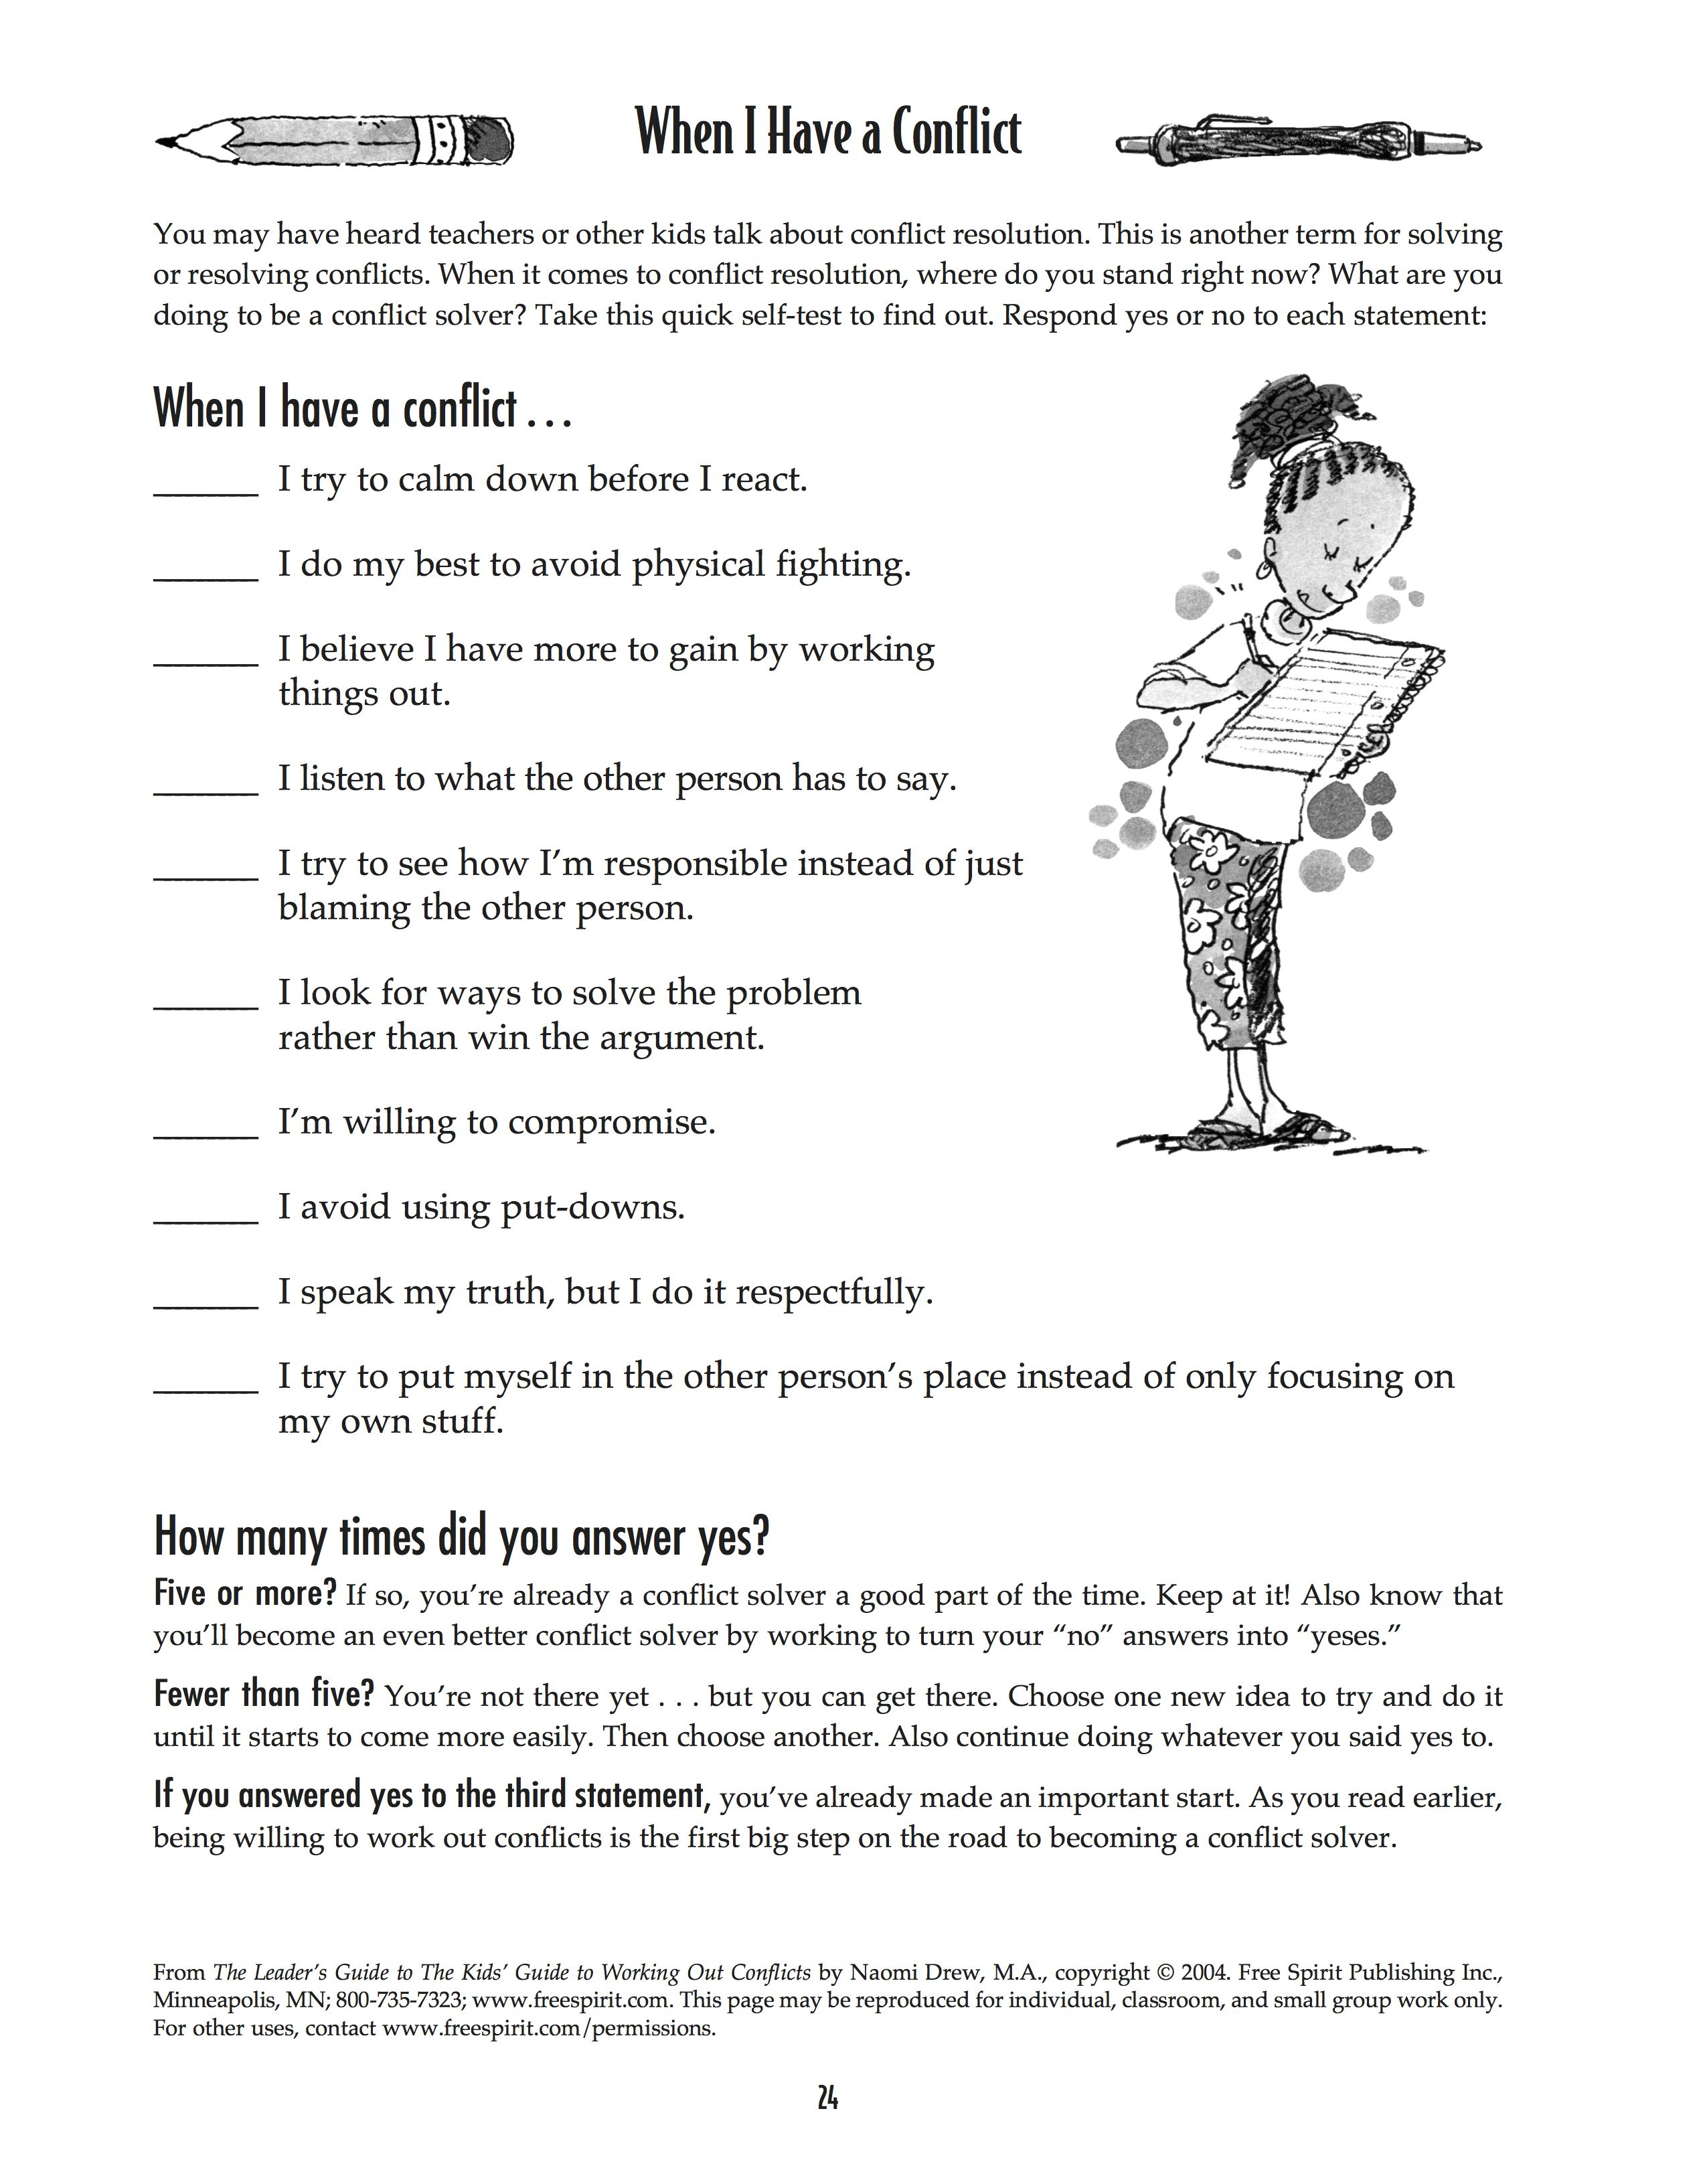 Free Printable Worksheet: When I Have A Conflict. A Quick Self-Test | Free Printable Worksheets On Means Of Communication